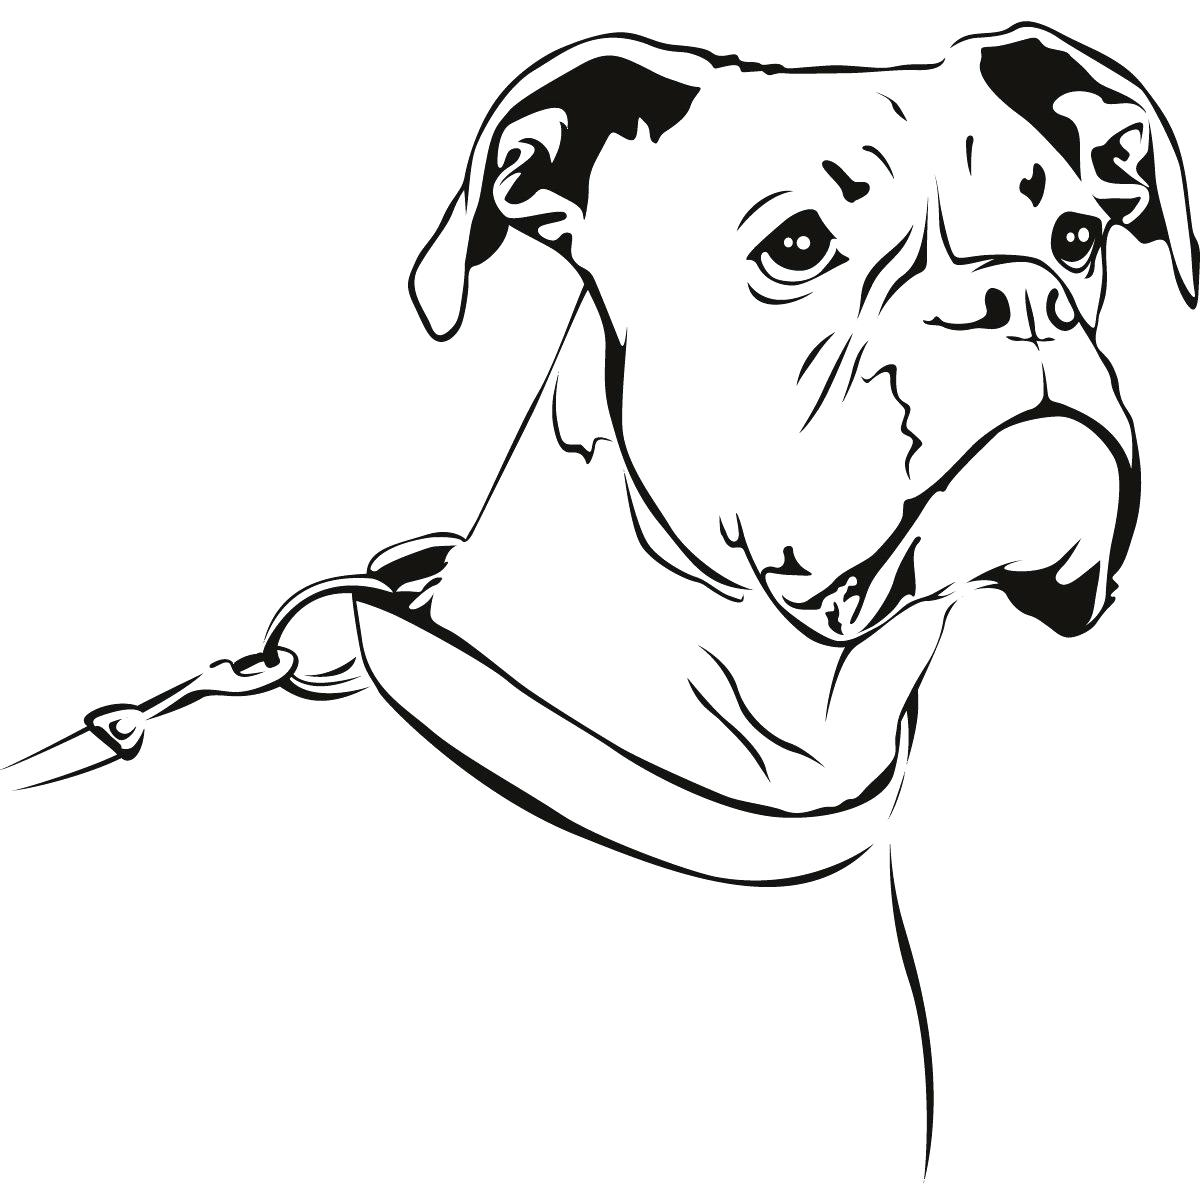 Boxer dog drawing at free for personal for Printable boxer dog coloring pages